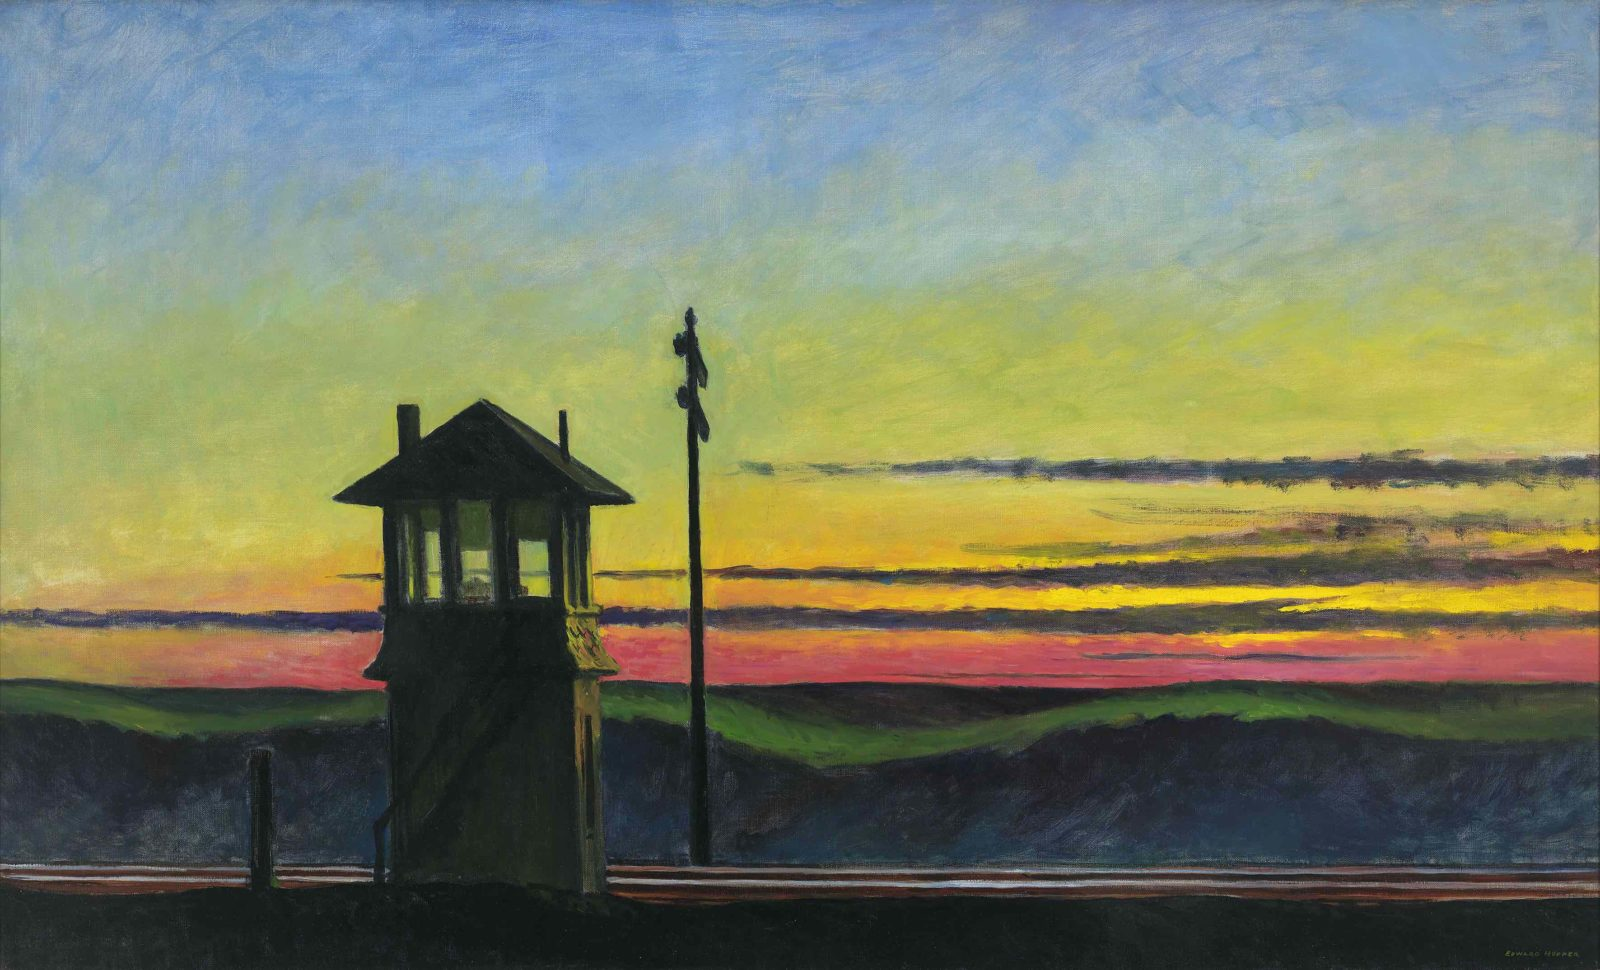 EDWARD HOPPER, RAILROAD SUNSET, 1929